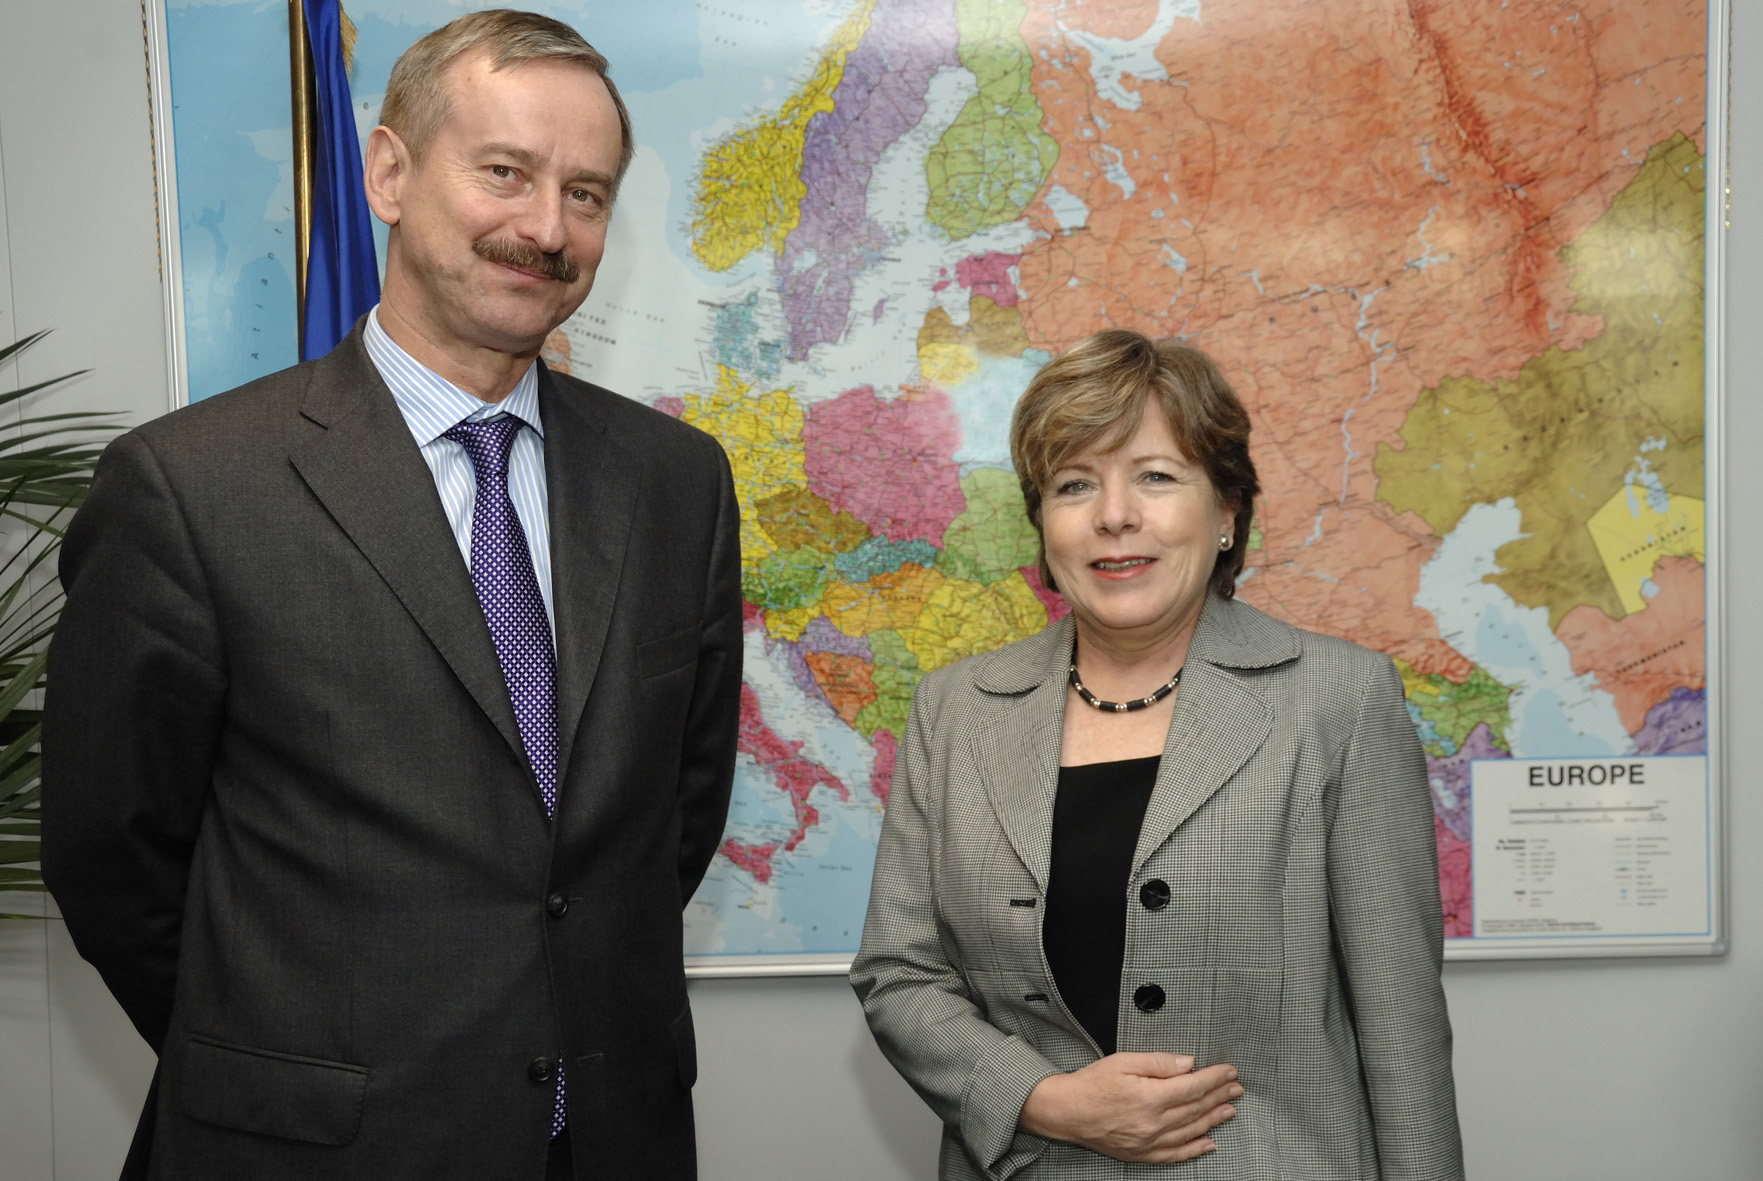 Visit by Alicia Barcena, Deputy Secretary General for Management of the United Nations, to the EC